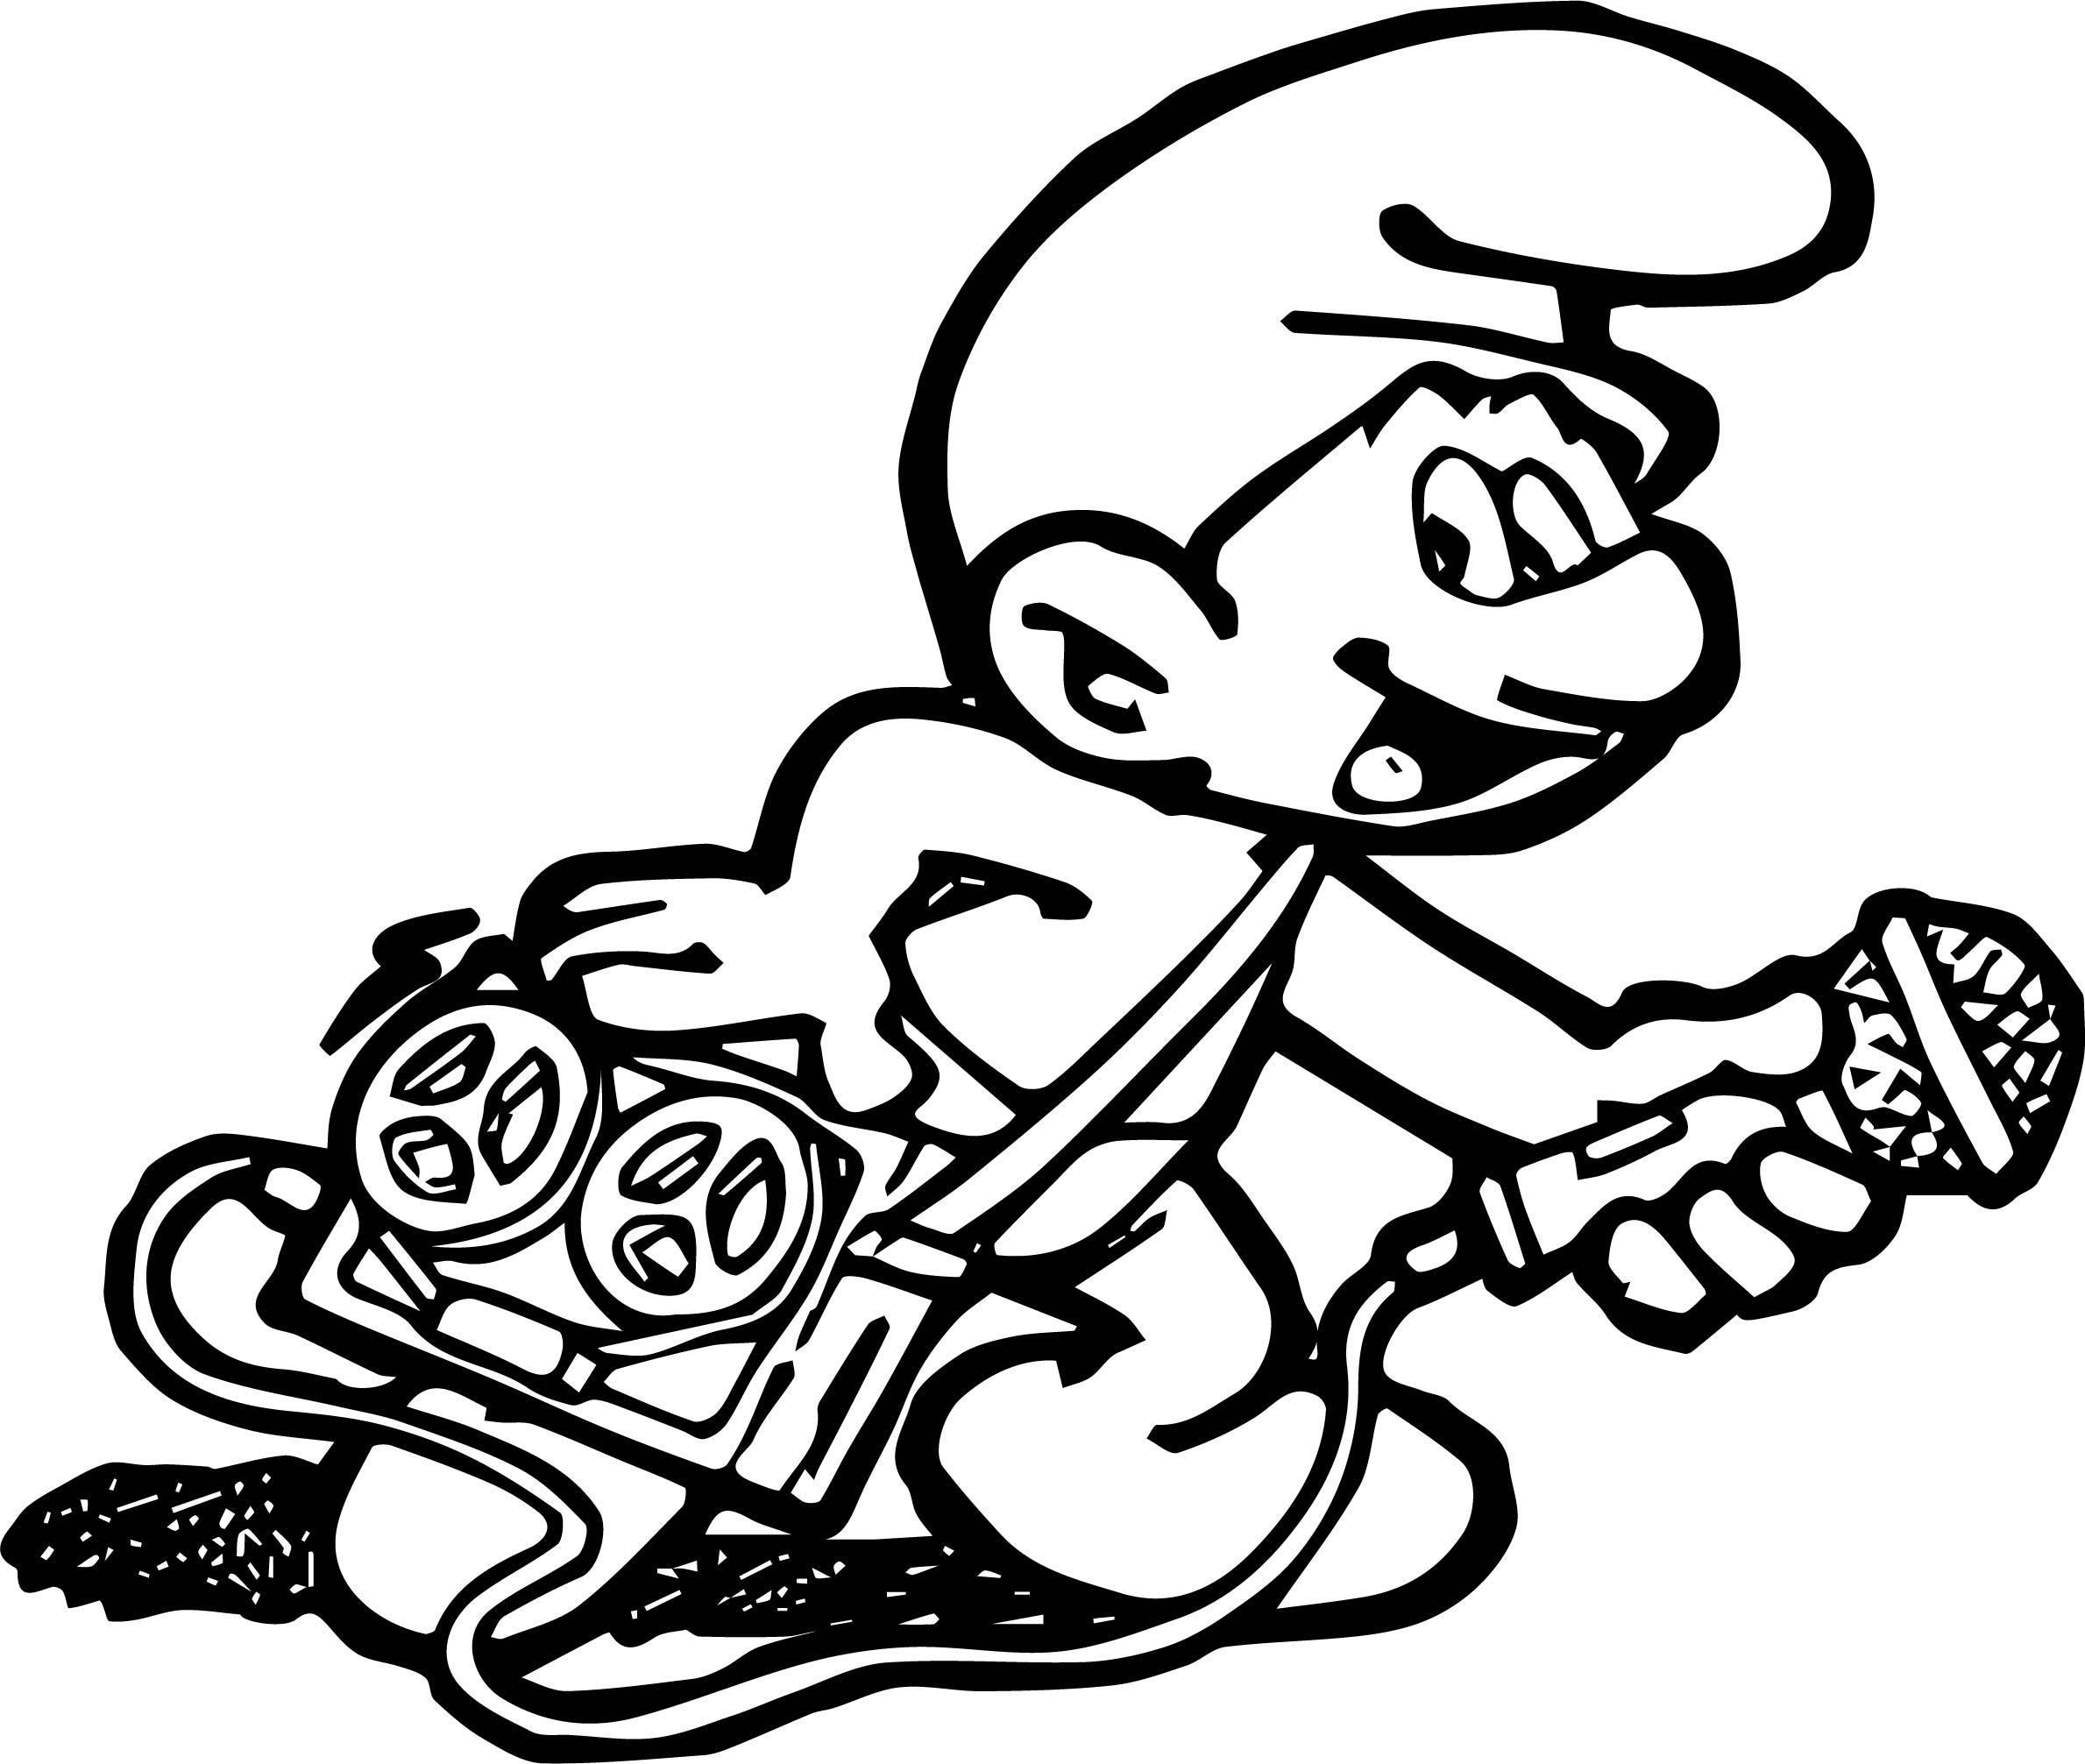 2379x2013 Incredible Smurf Coloring Page Music Player Wecoloringpage Pic